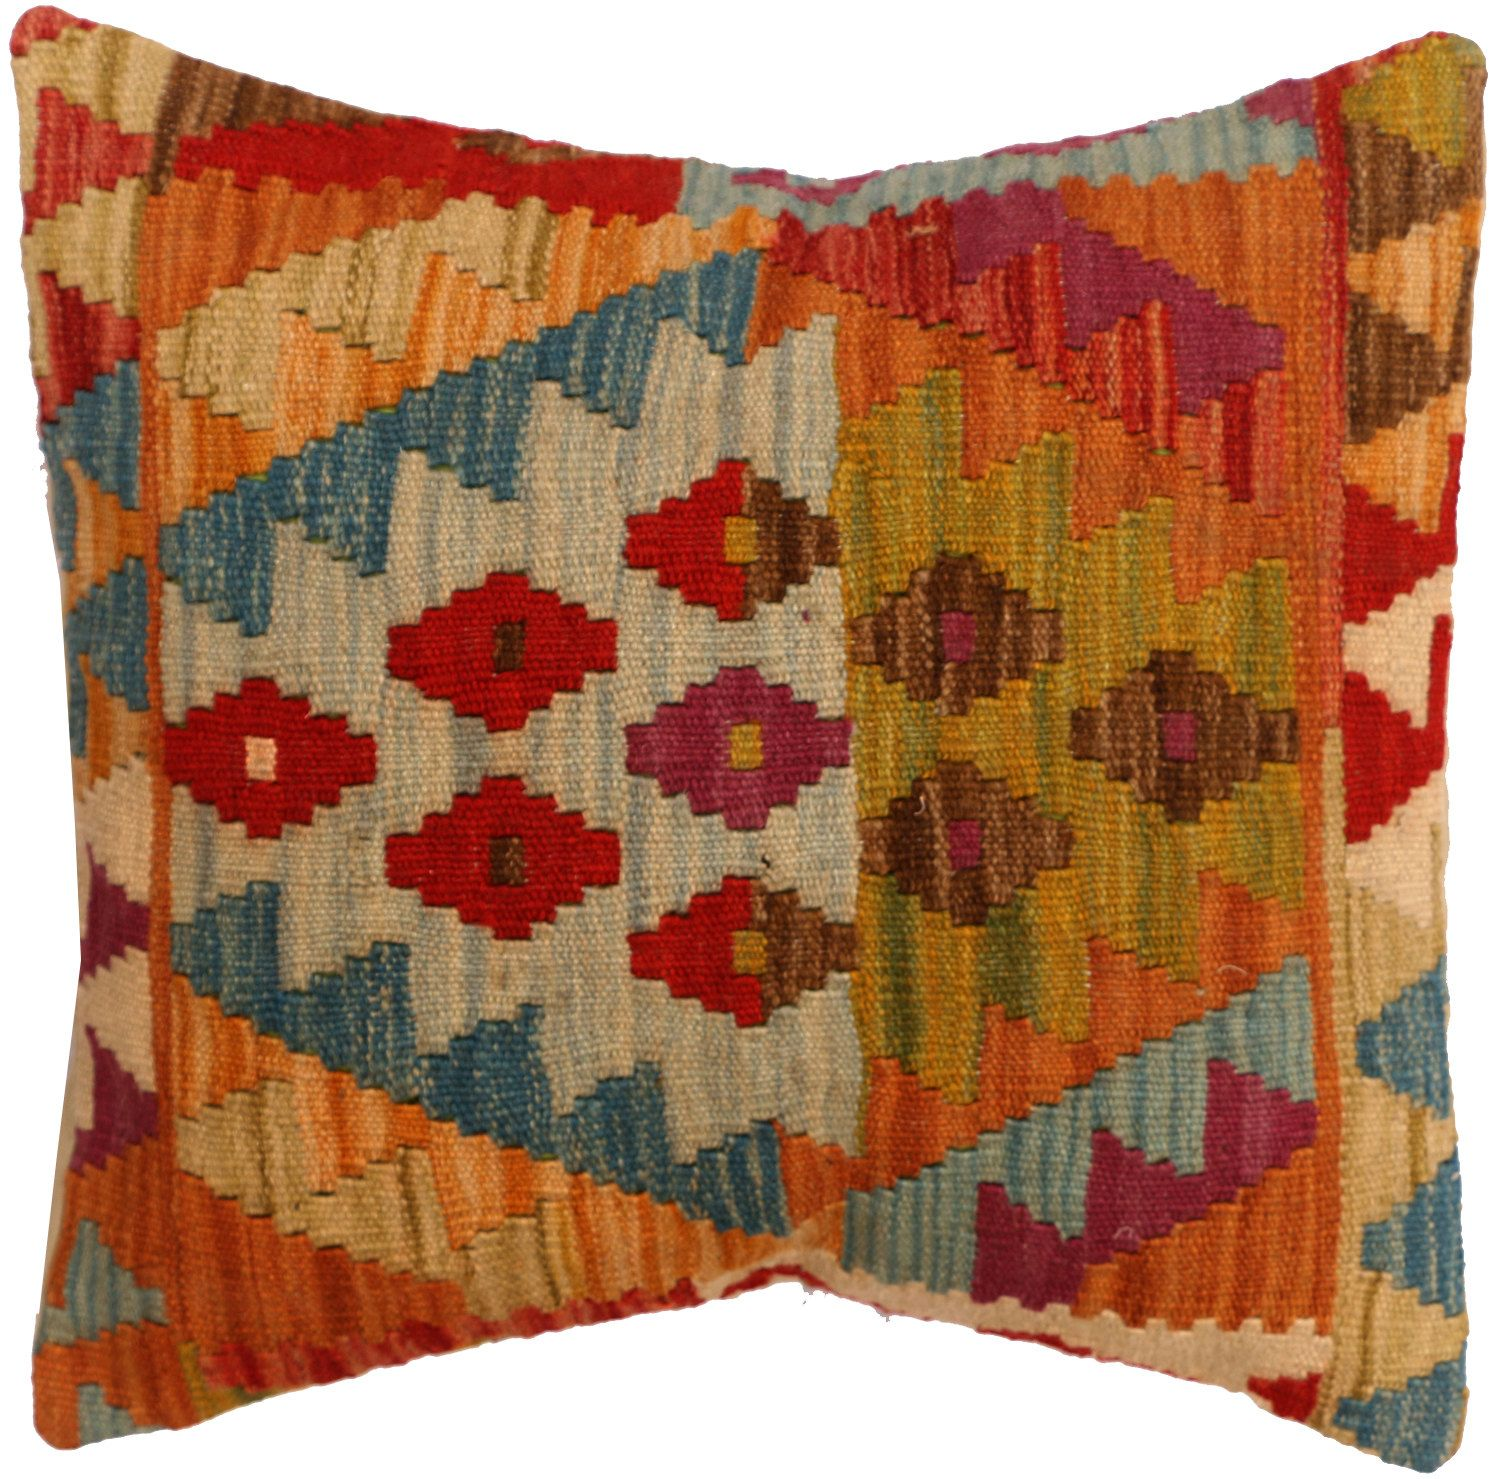 Handmade kilim cushion cover 48x48cm,P #332 by WitcheryRugs on Etsy